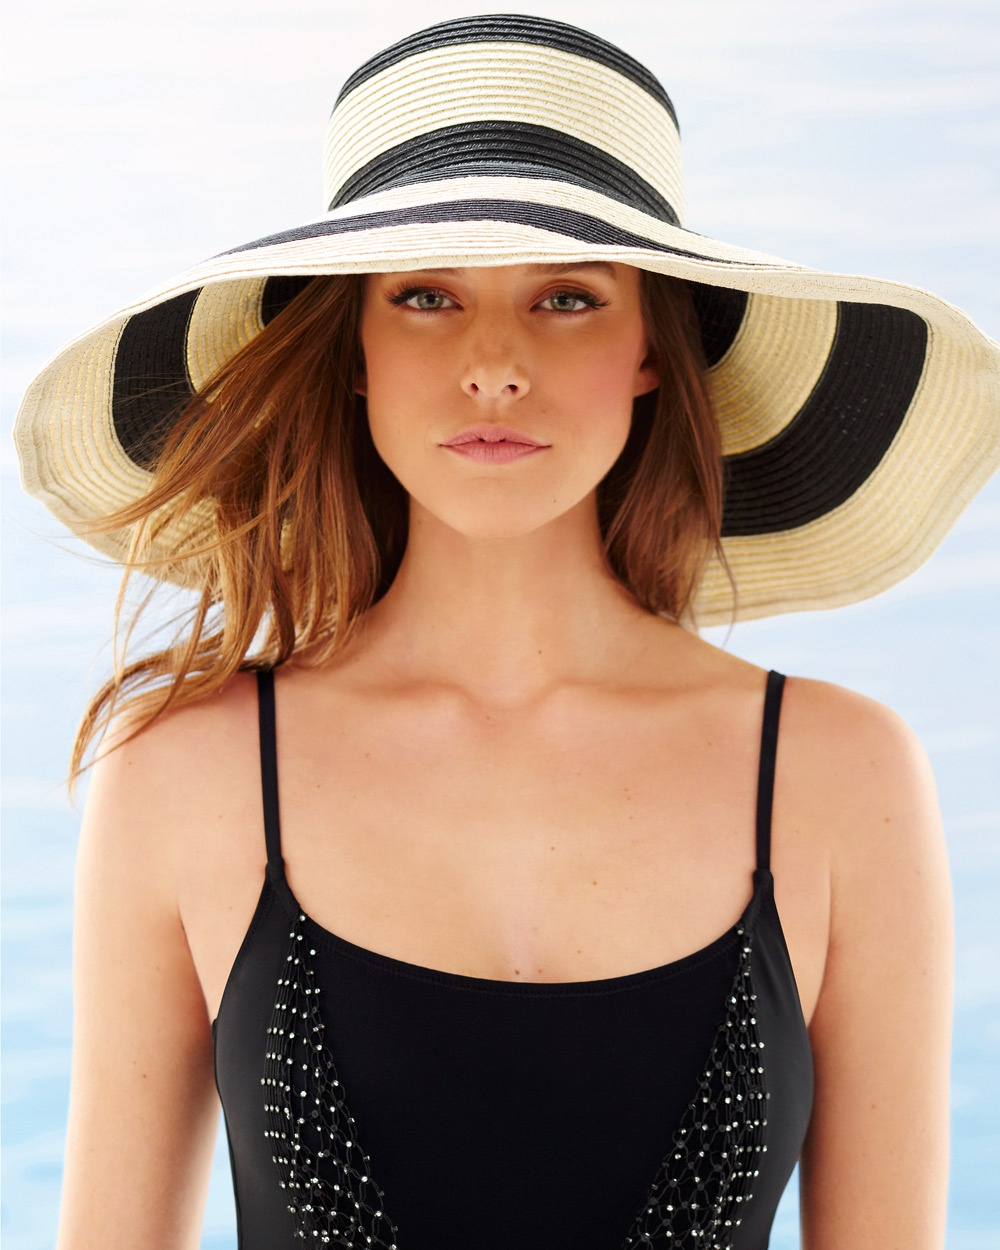 Striped-Straw-Hats5 10 Women's Hat Trends For Summer 2017